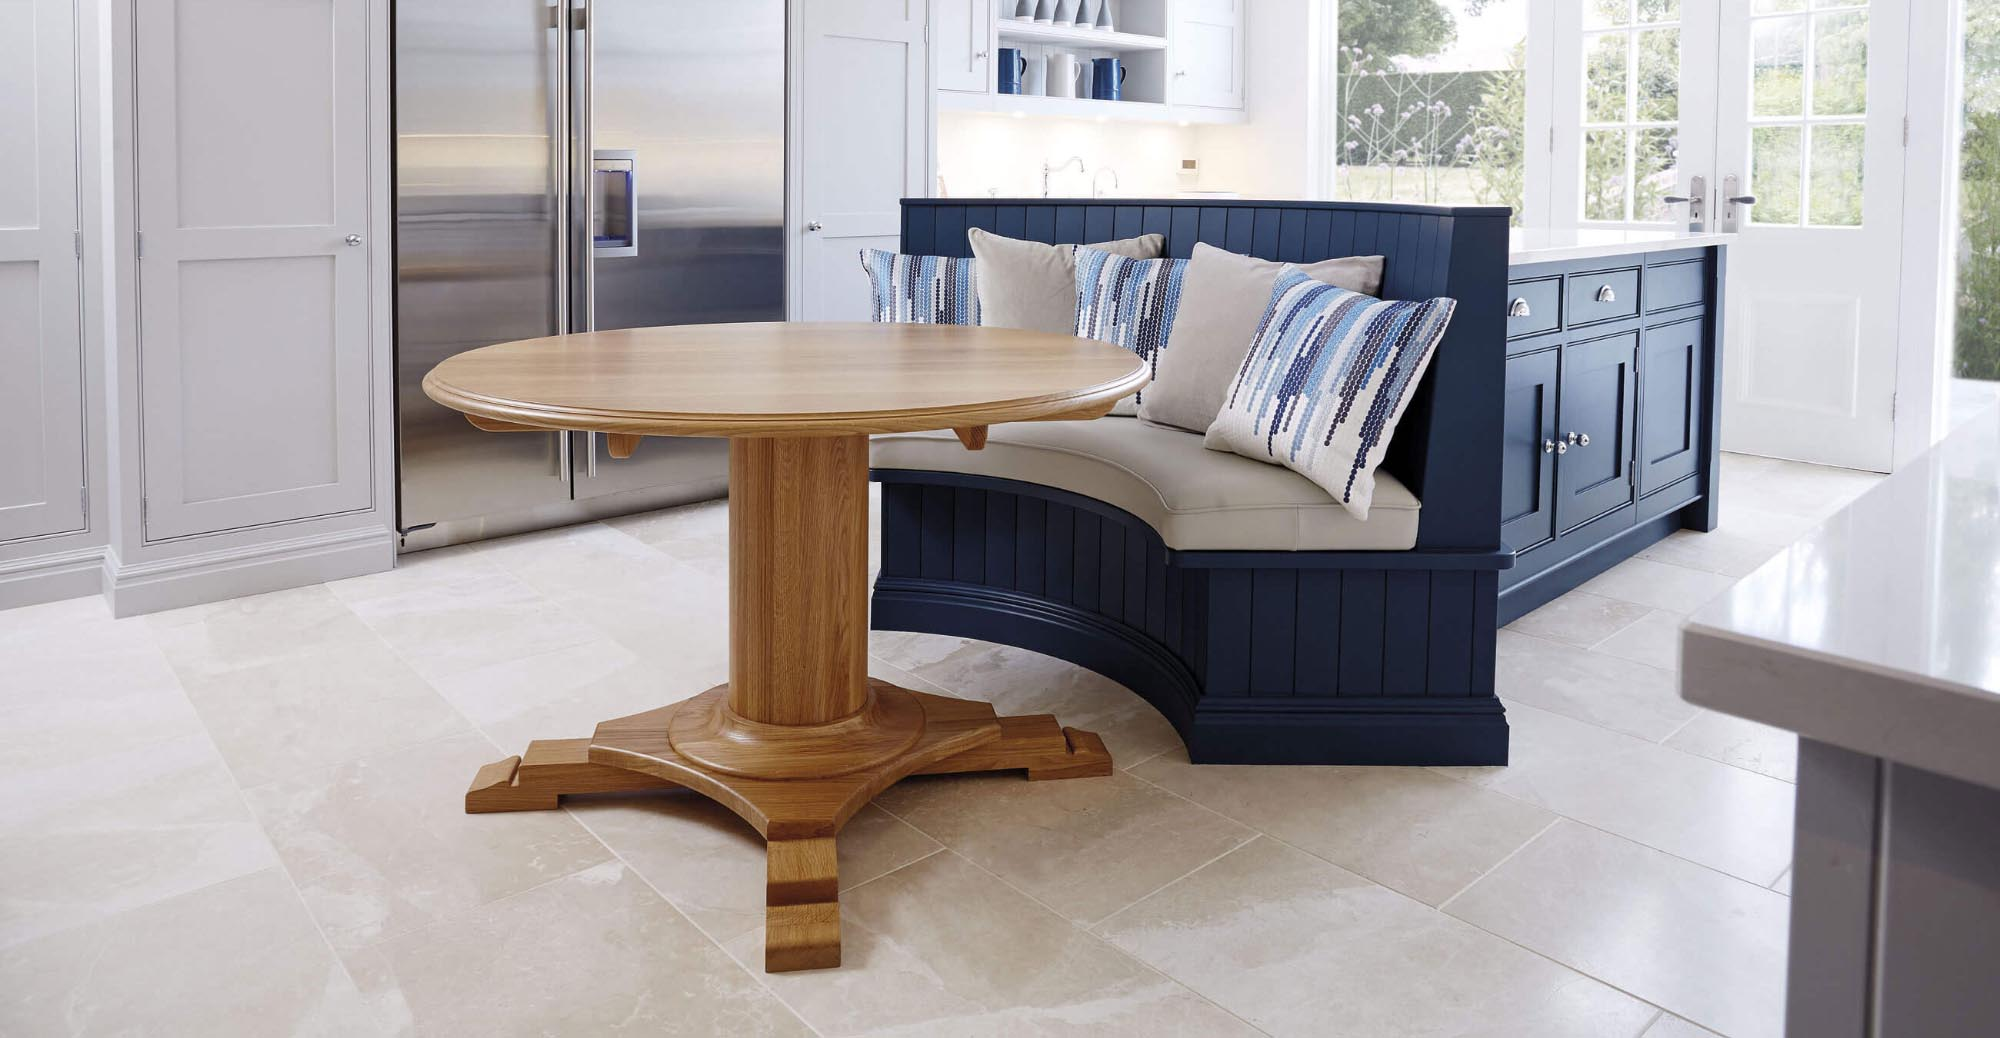 Kitchen Bench Seating Seating Dining Tom Howley